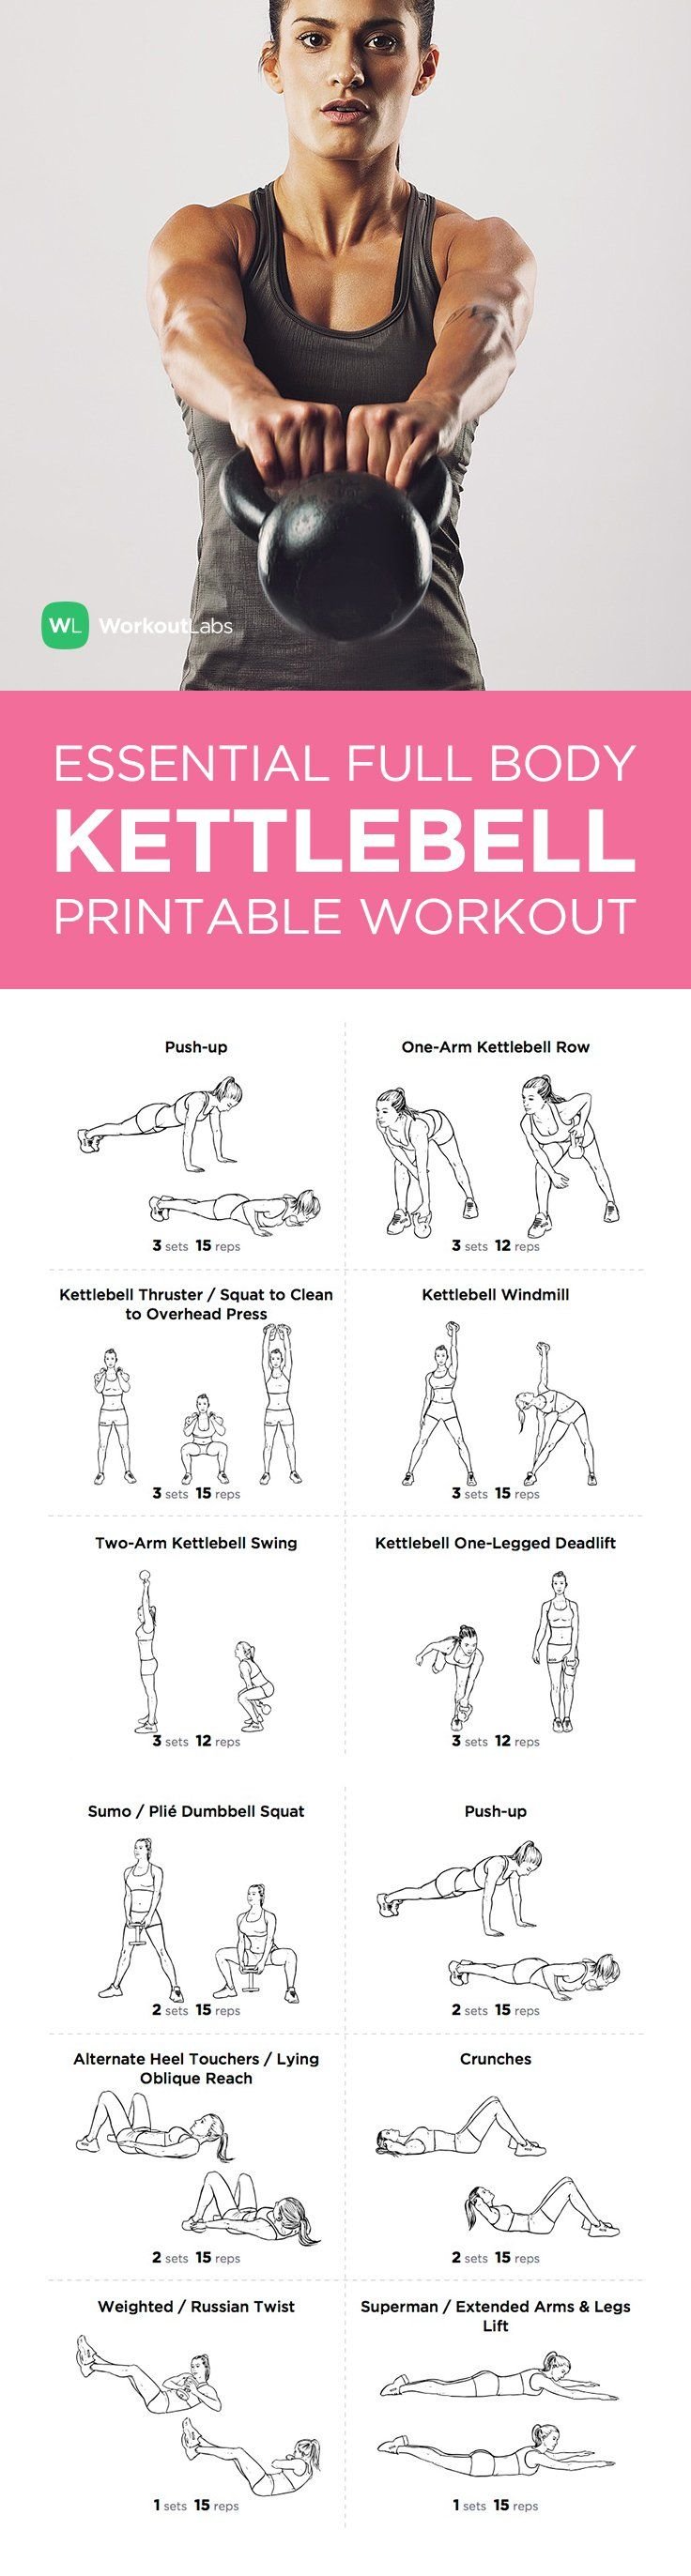 Pin by Brianna Hanscom on Fitness | Printable workouts ...